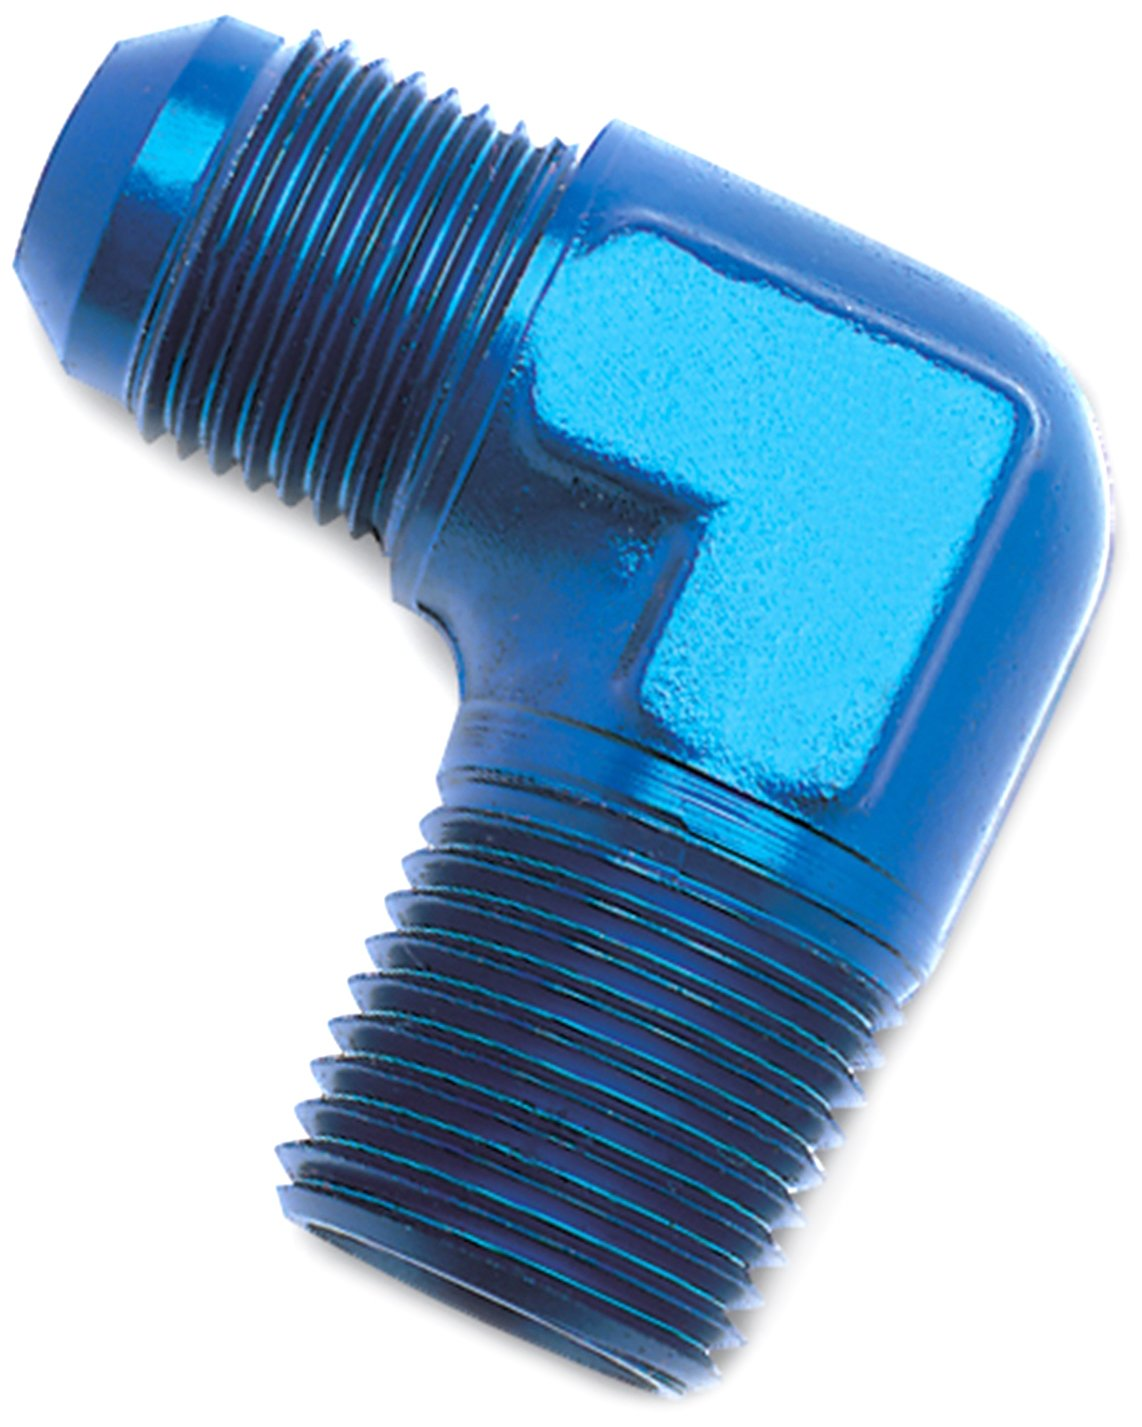 6AN 90-Degree Flare to 1//4 Pipe Adapter Fitting Russell 660820 Blue Anodized Aluminum